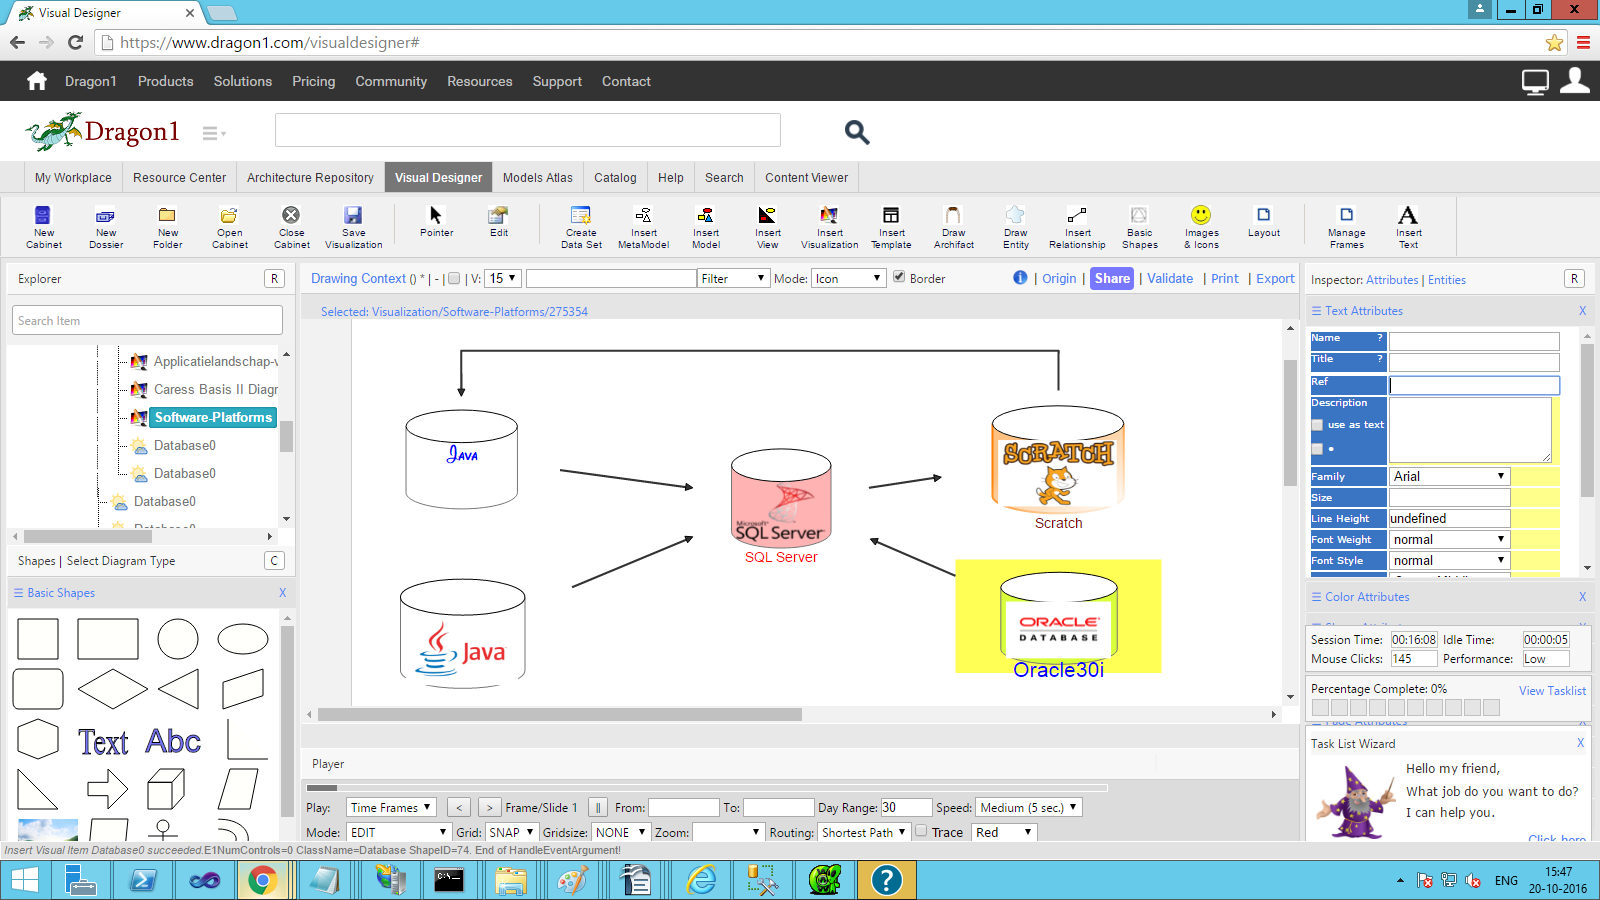 dragon1 connected database shapes with embedded images